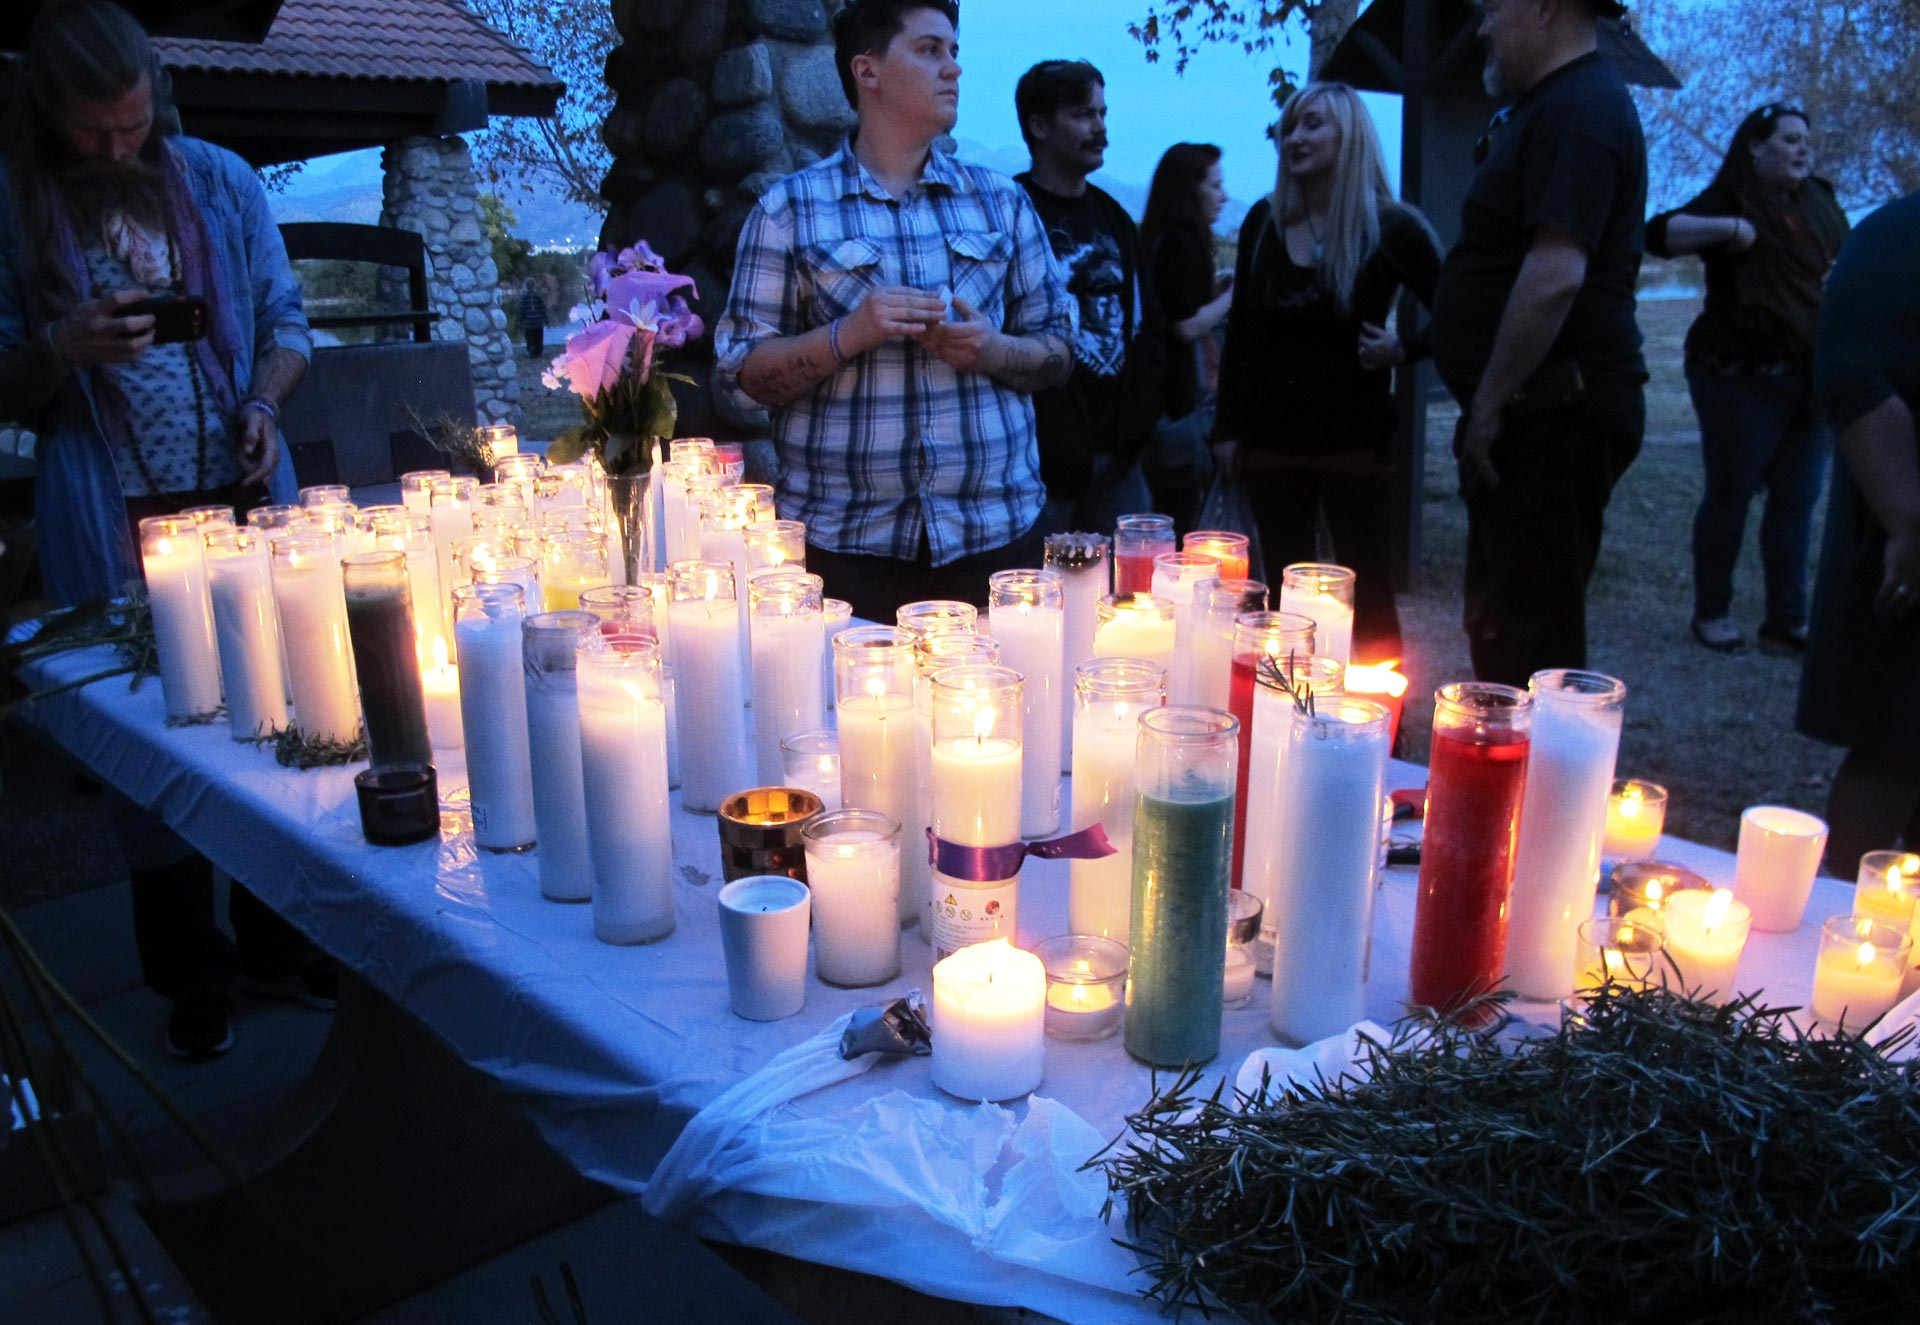 About 100 people gathered at the site of the Renaissance Pleasure Faire in Irwindale on Saturday for a candlelight vigil to remember San Bernardino shooting victim Larry Daniel Kaufman.